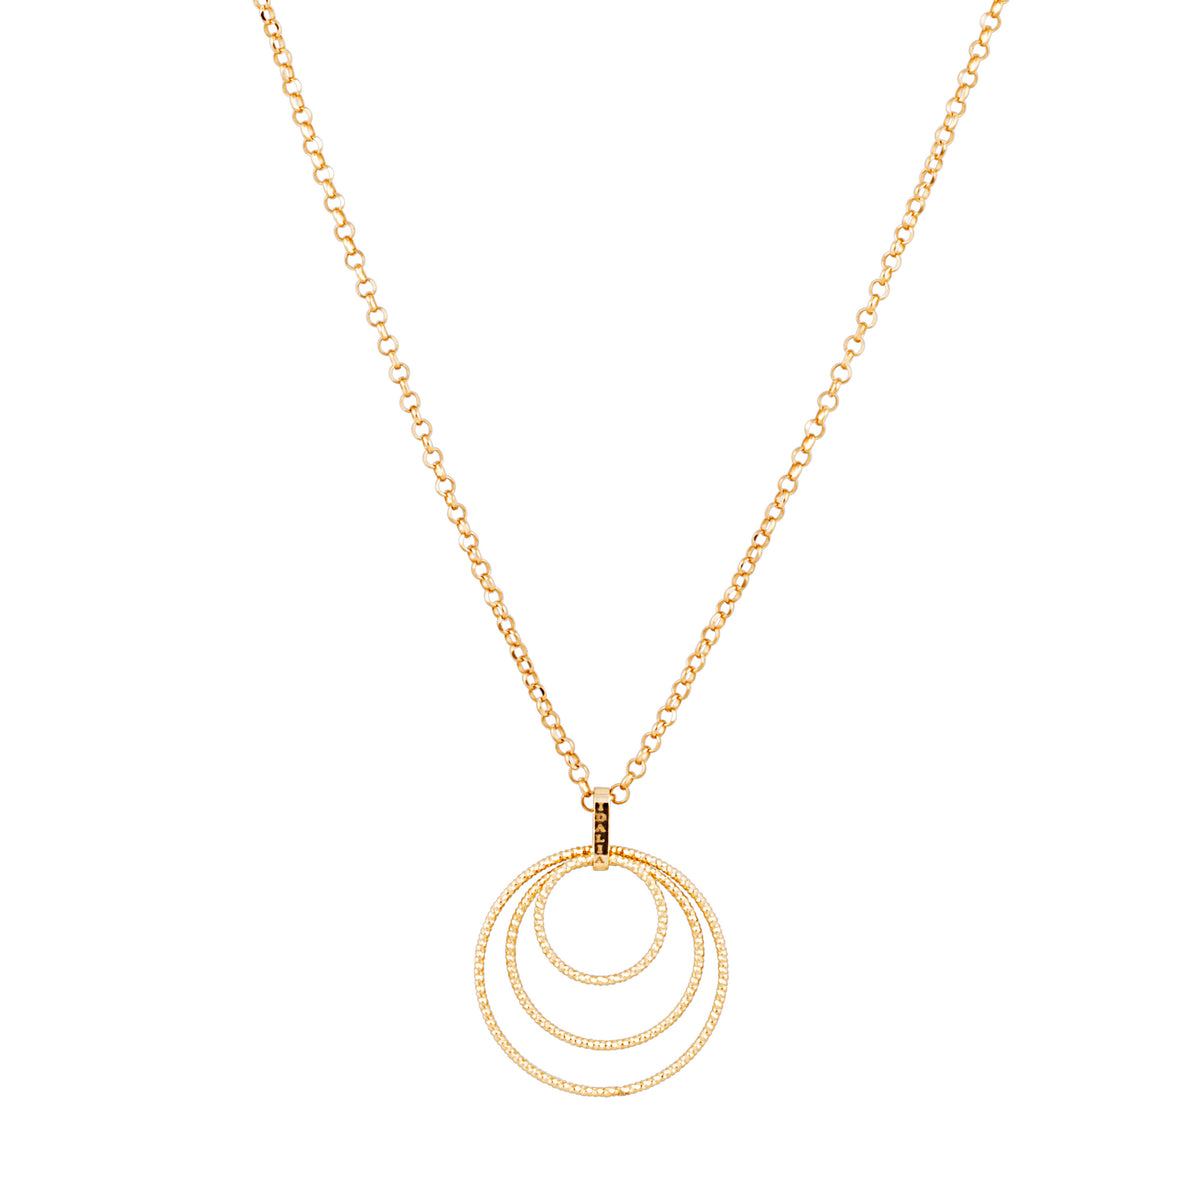 Idalia Jewelry - The Circle Trio Necklace - Gold